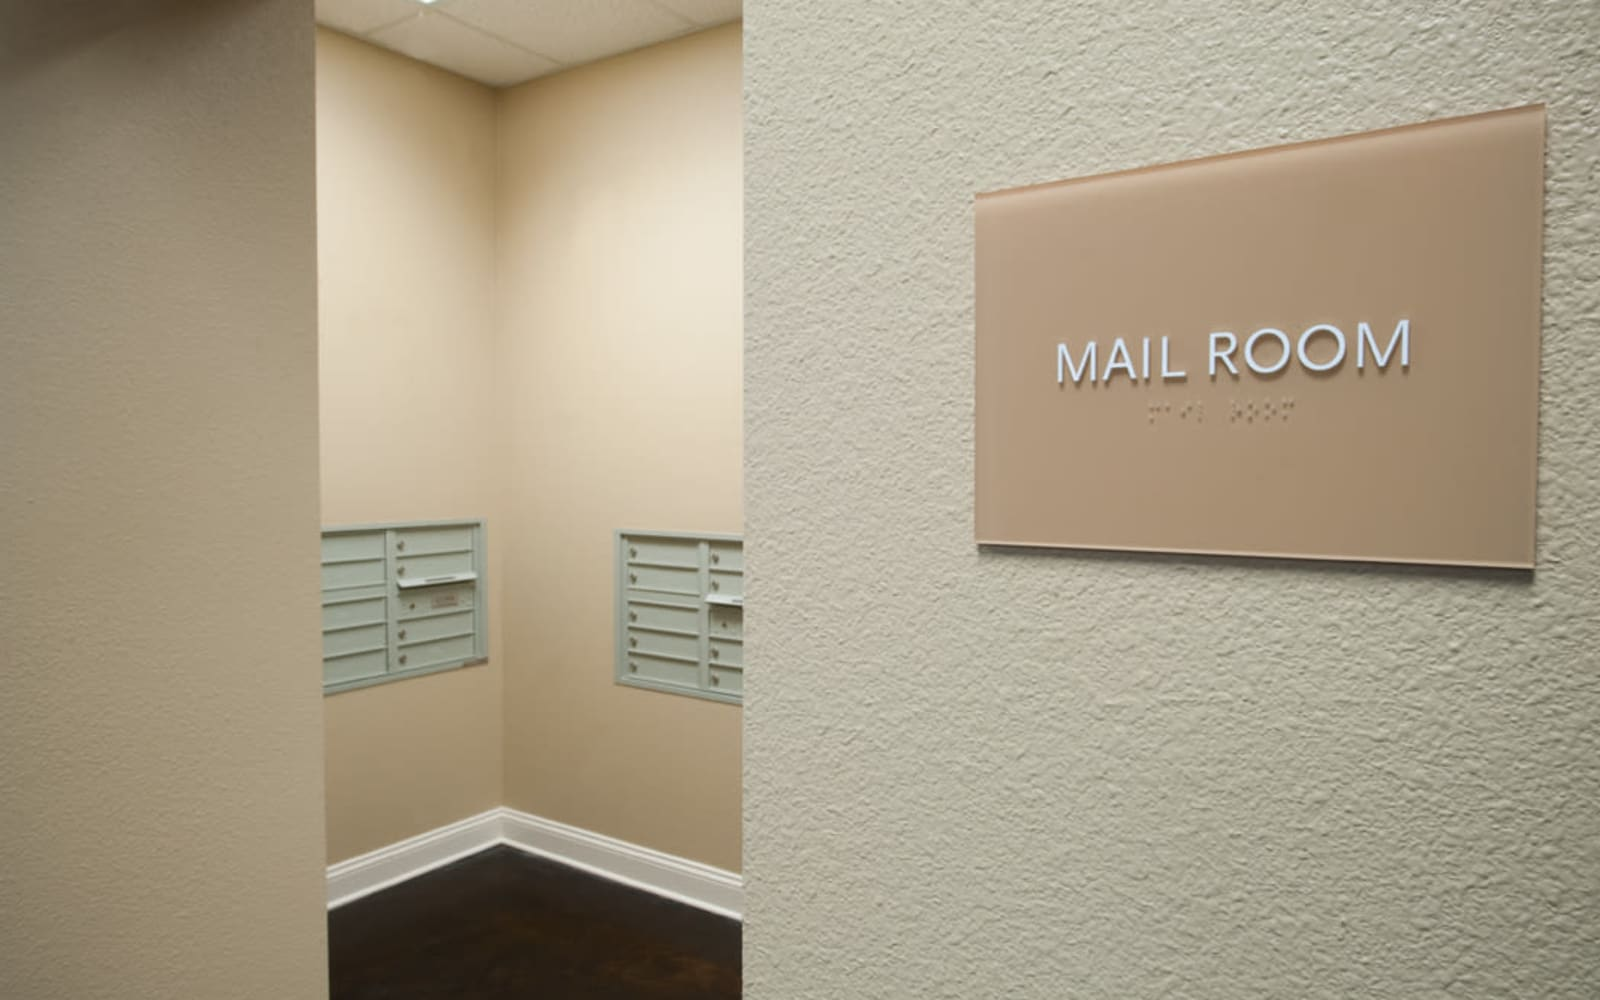 Mail room at Meridian in New Orleans, Louisiana